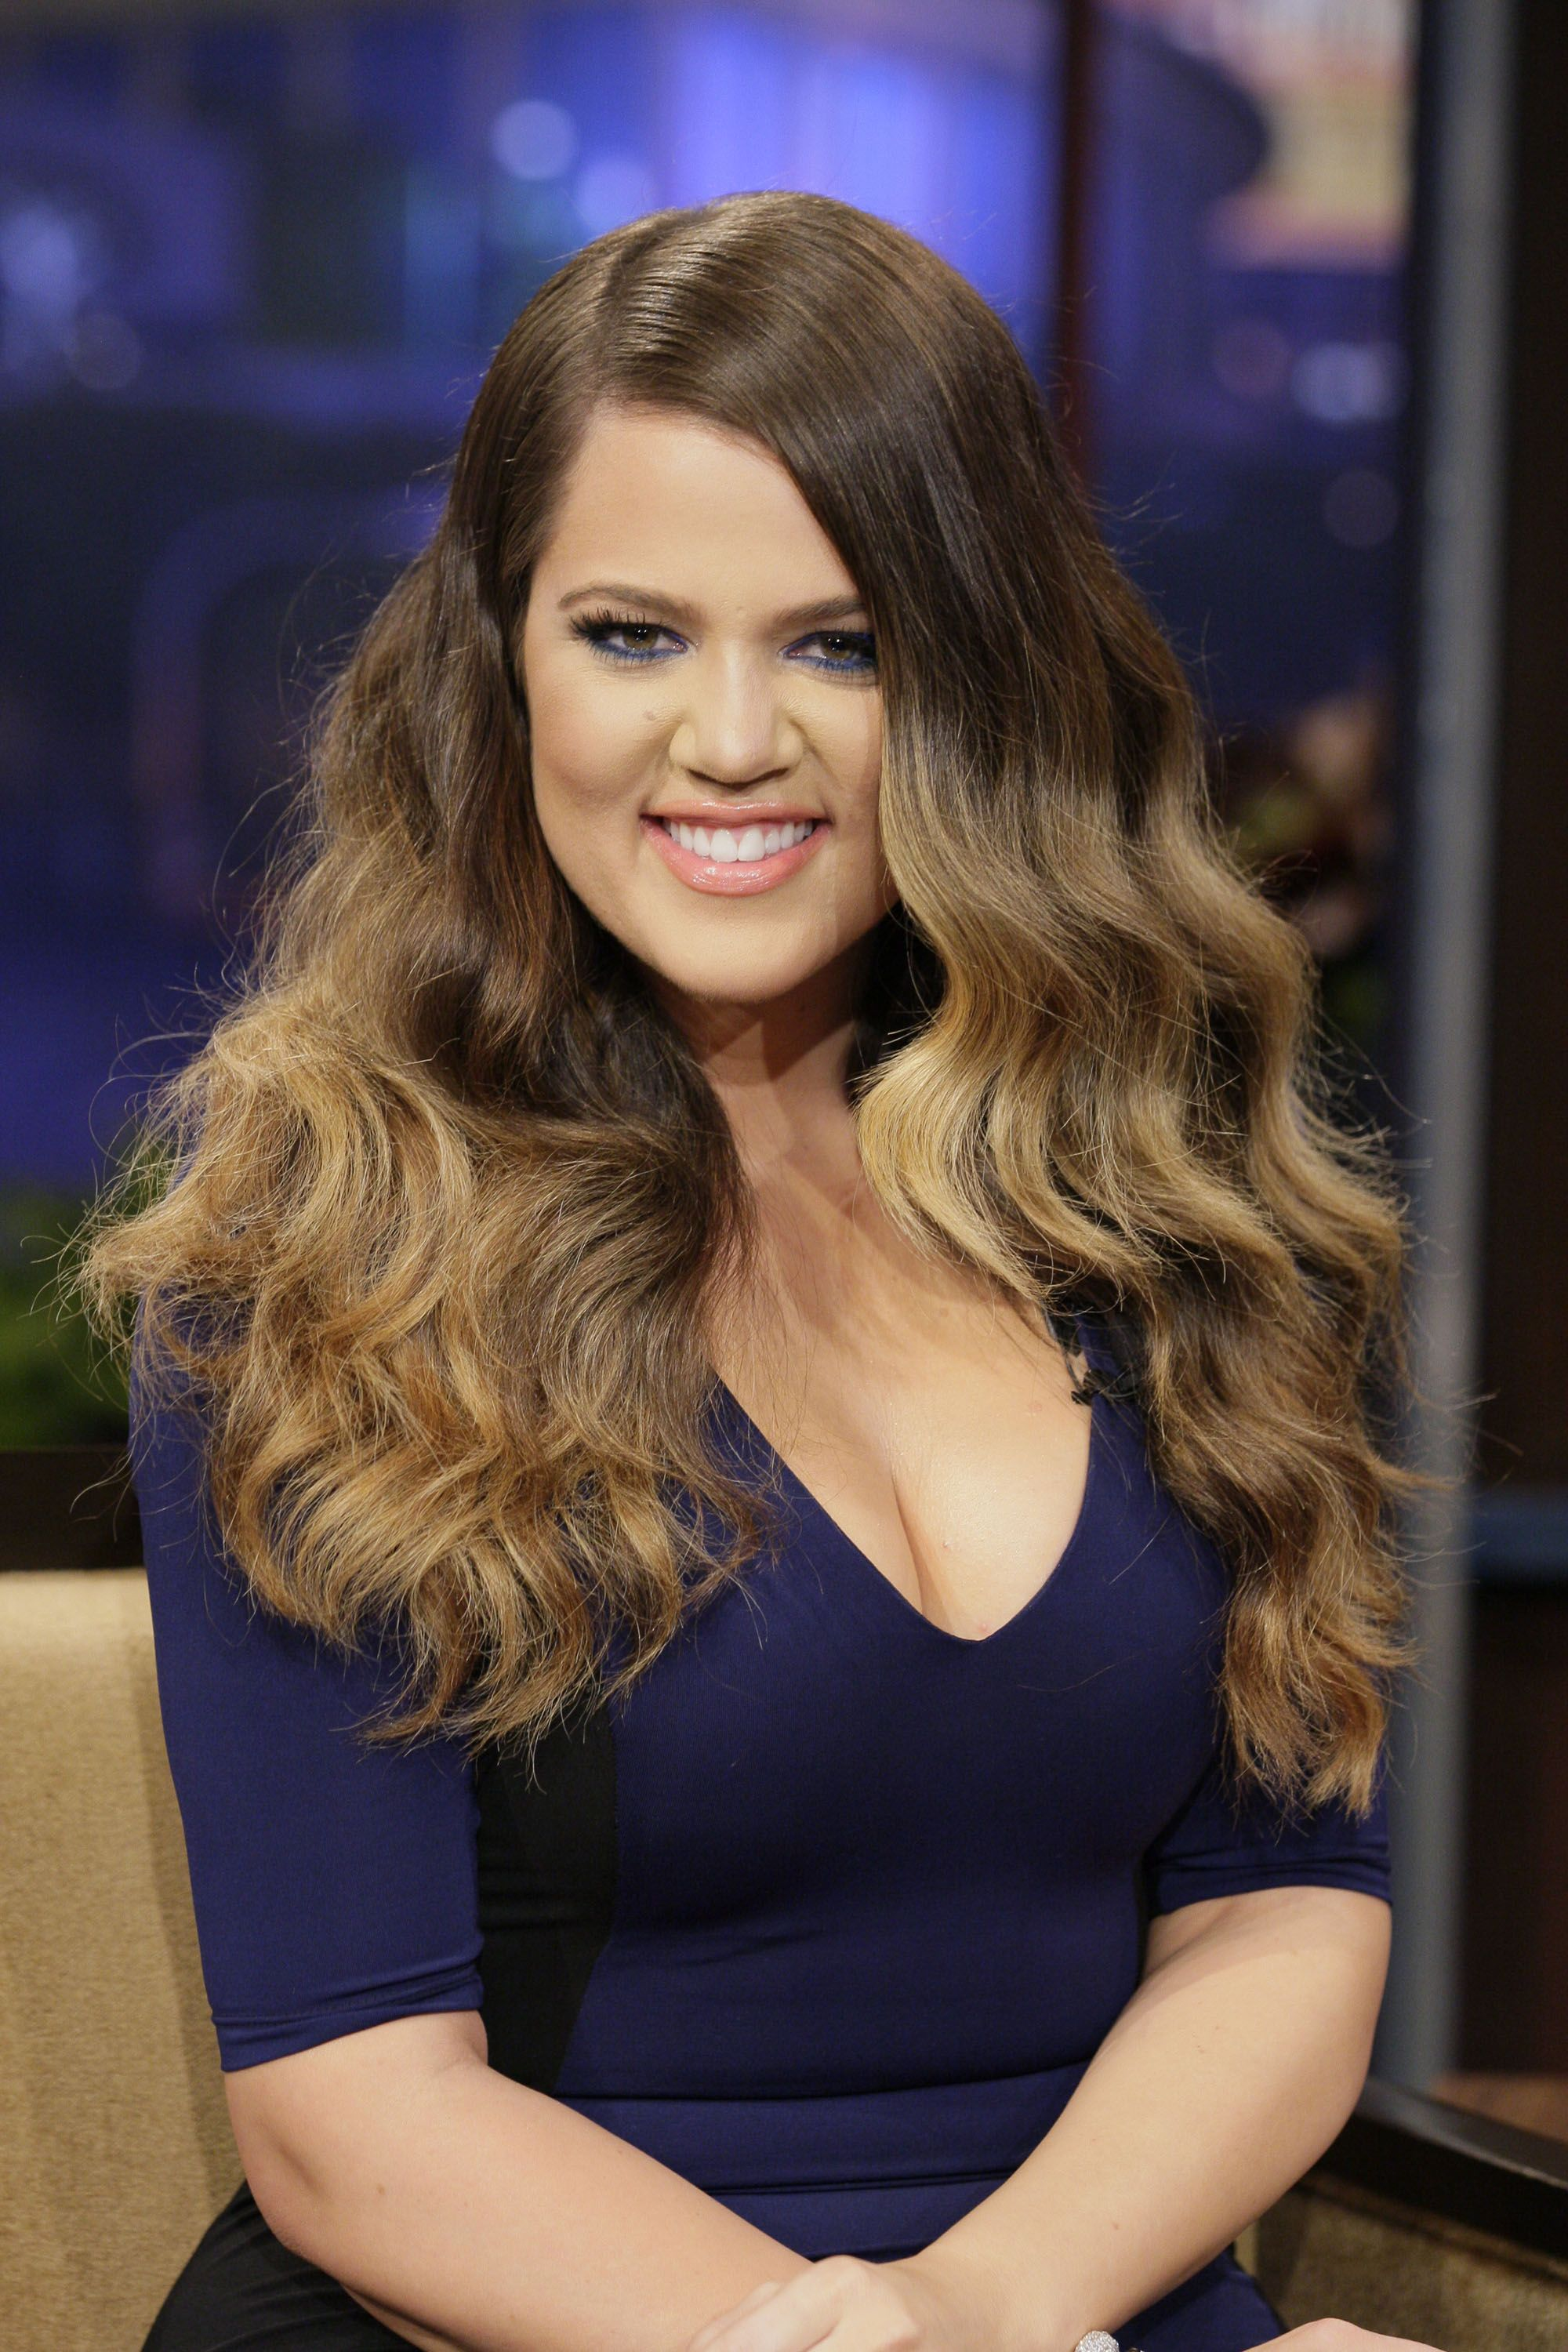 Wavy Hairstyles Brilliant Khloe On Leno Last Night Wearing Kardashian Kollection Color Block